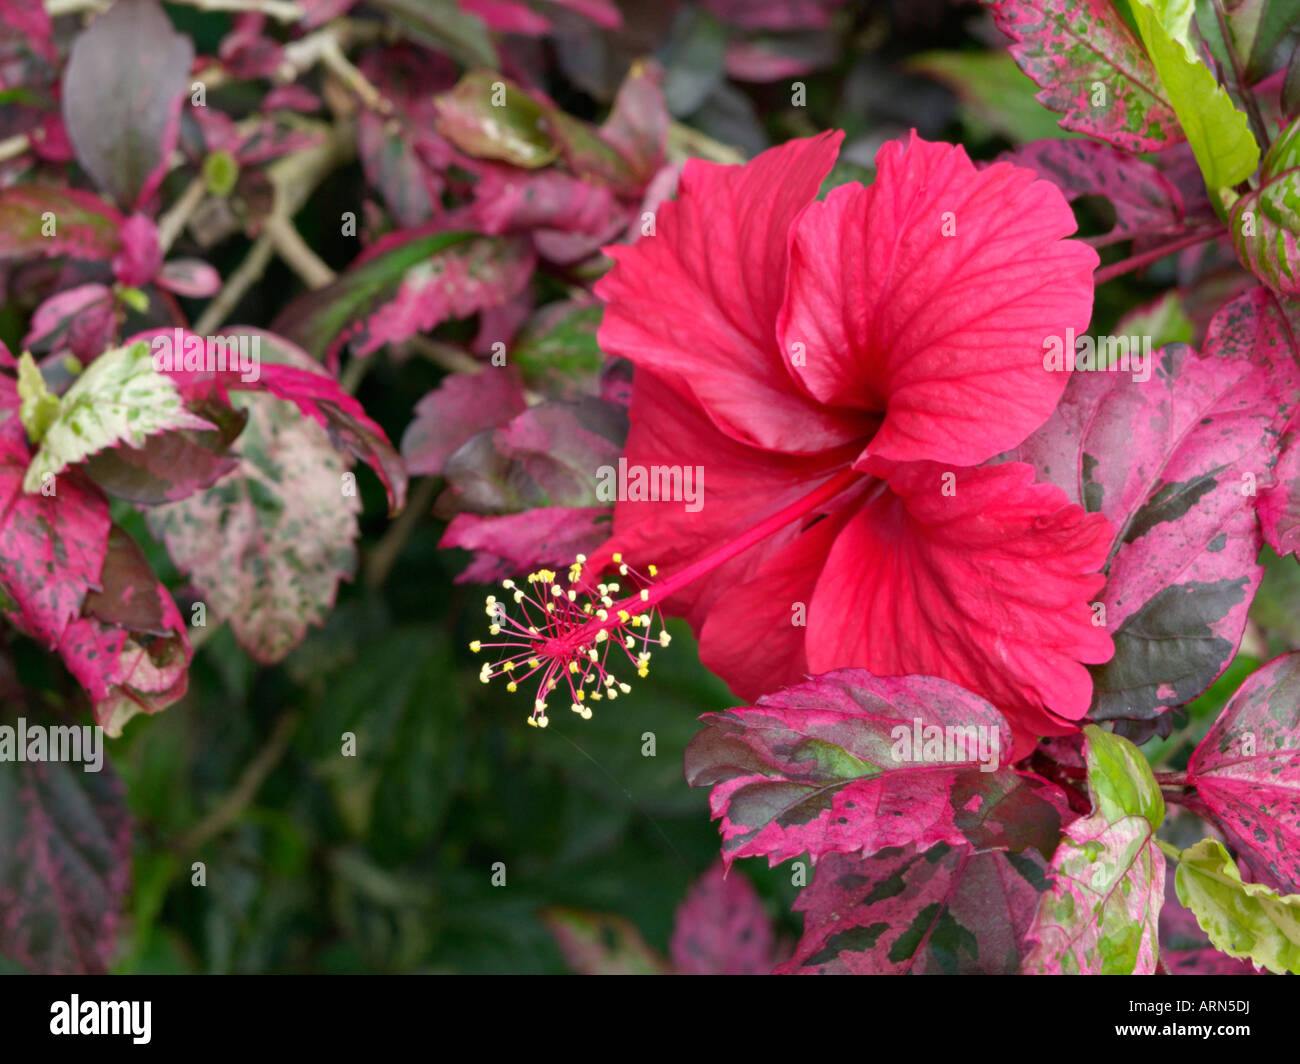 Flower Parts Red Hibiscus Rosa Sinensis Stock Photos Flower Parts